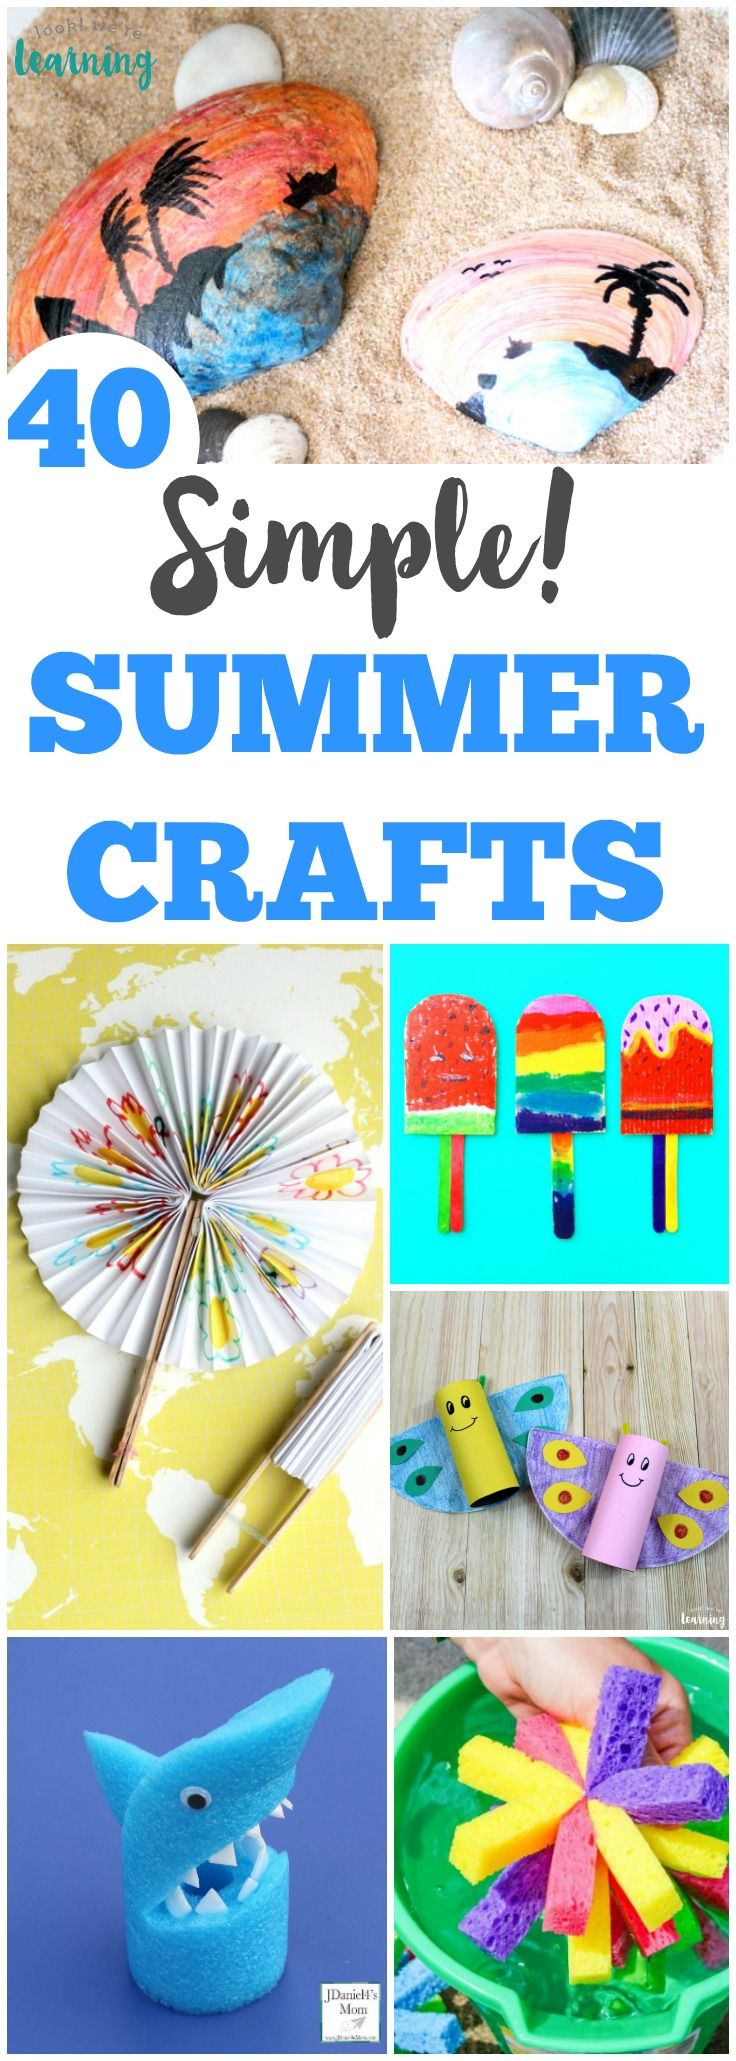 40 Simple Summer Crafts for Kids is part of Simple Kids Crafts Summer - Share some easy crafting fun with the kids this summer with this list of simple summer crafts!